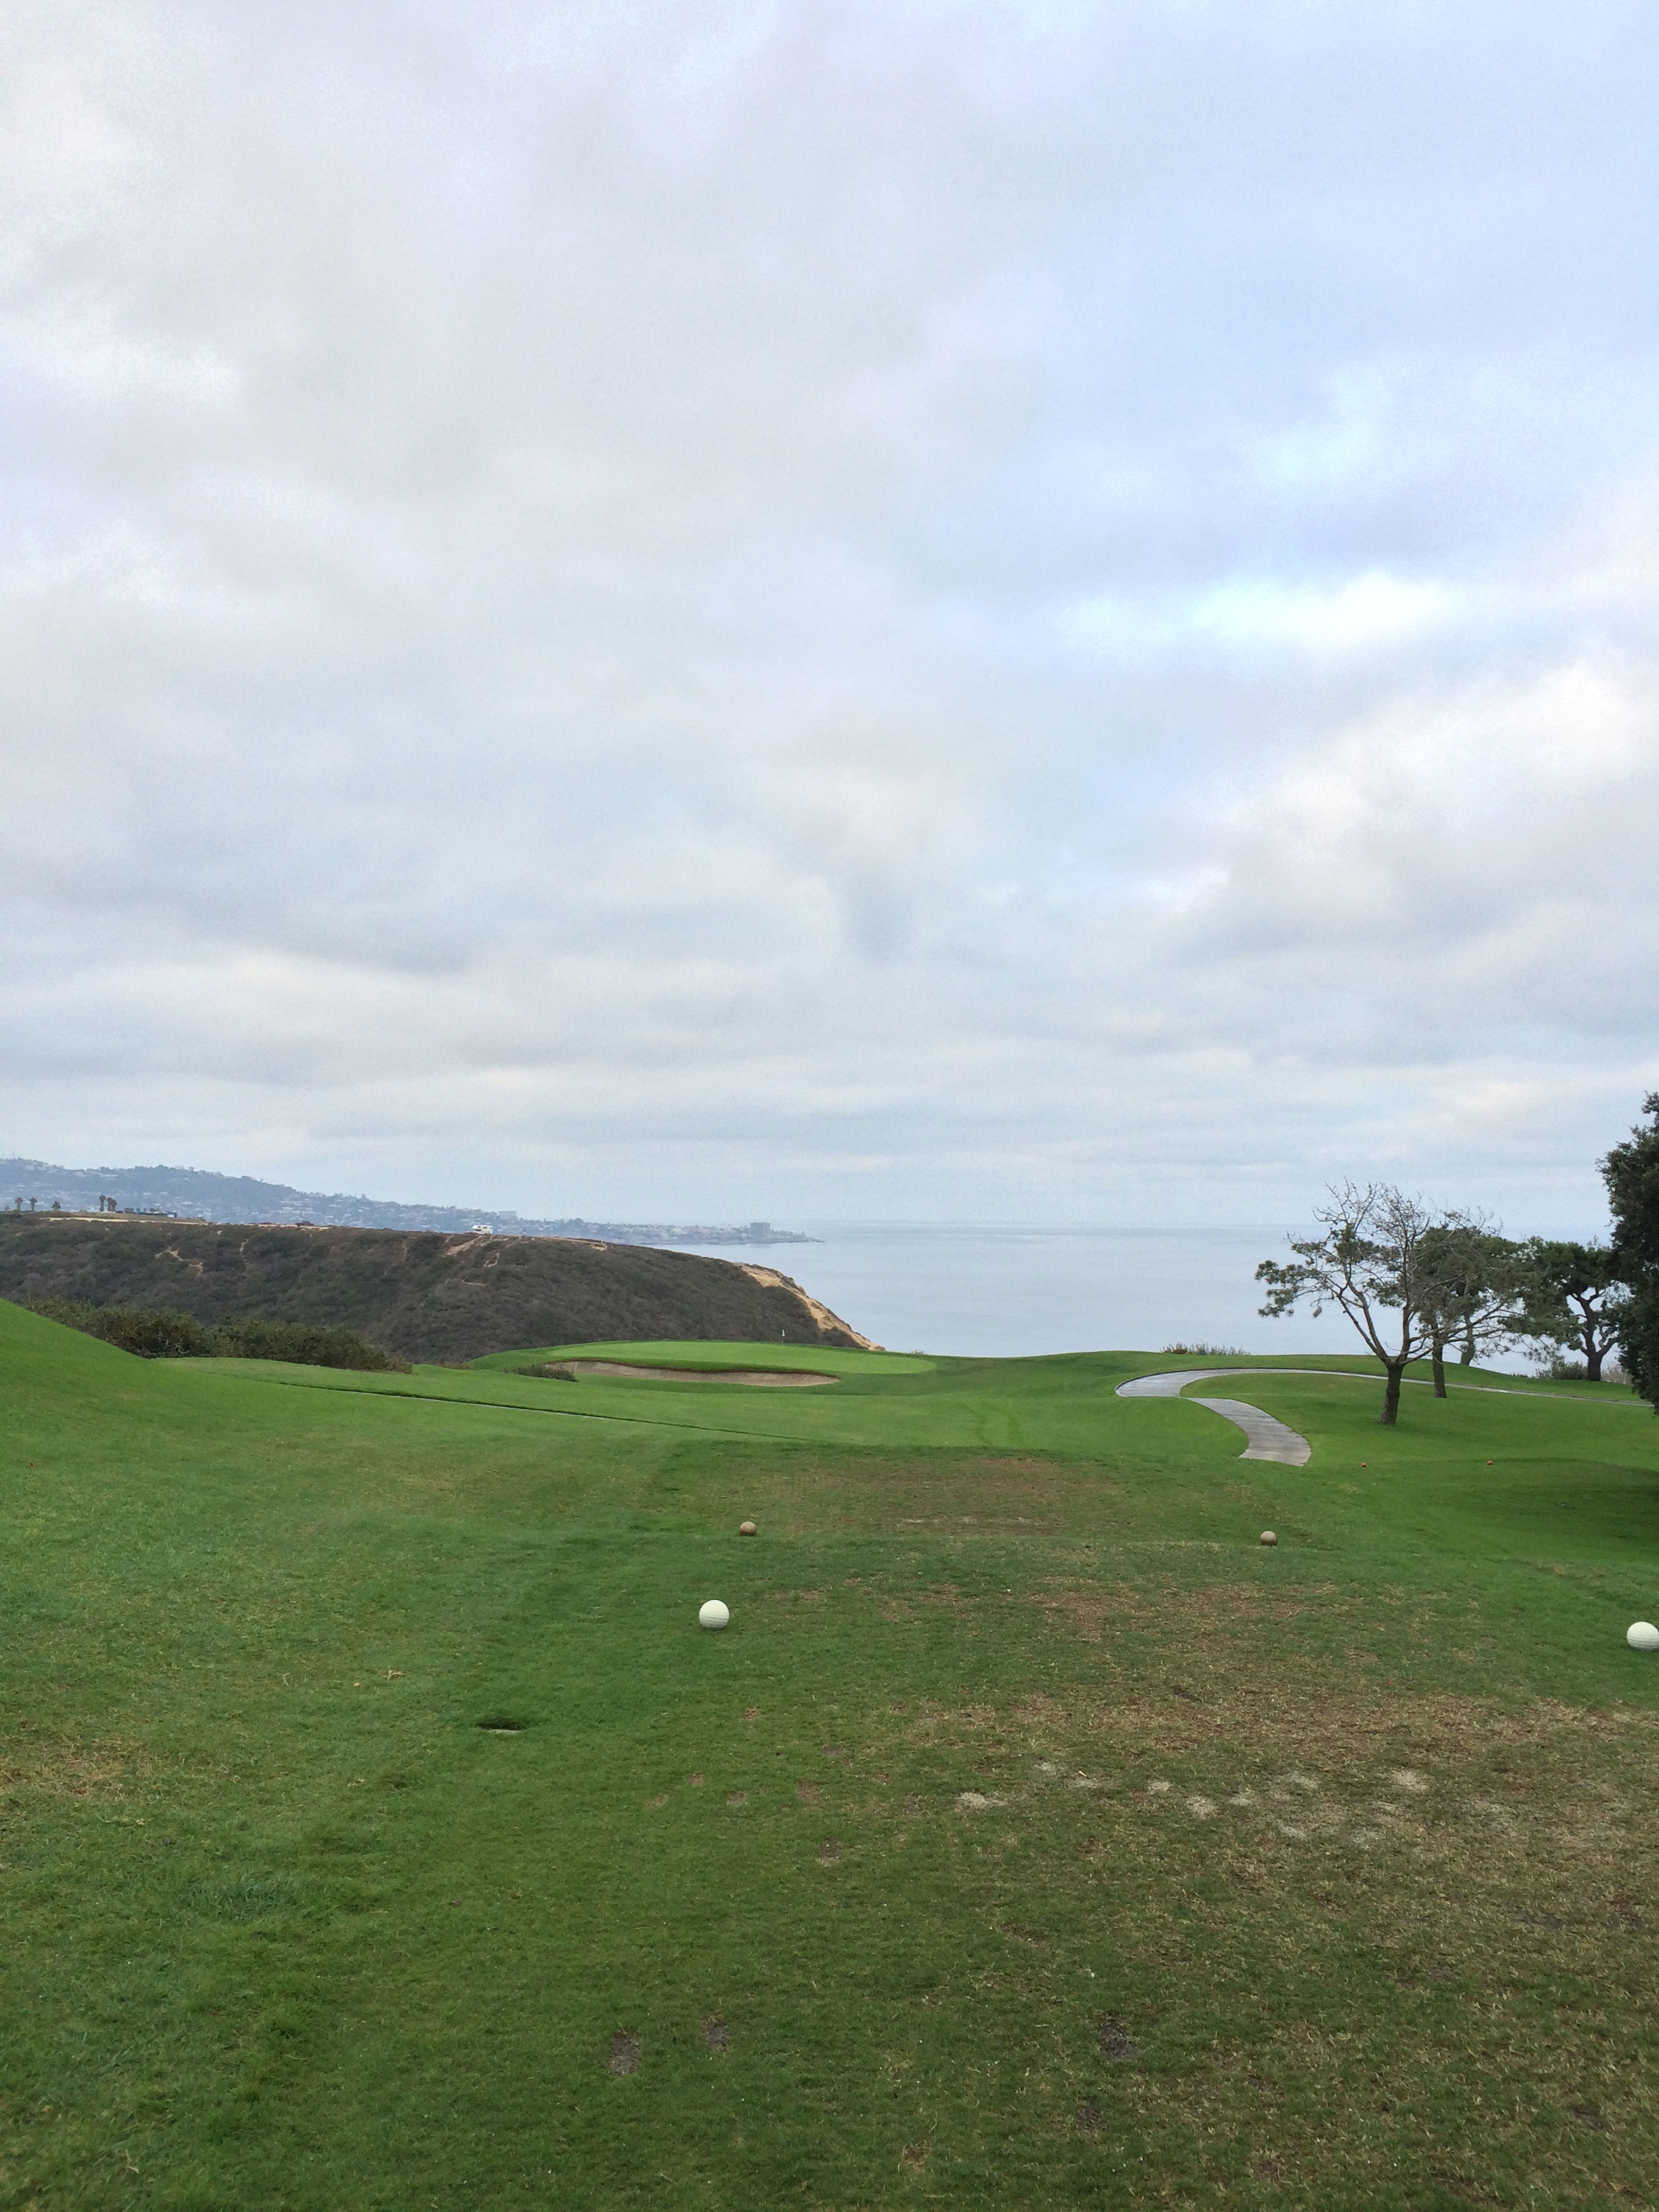 The hole everyone talks about at Torrey Pines, the ocean laden 3rd